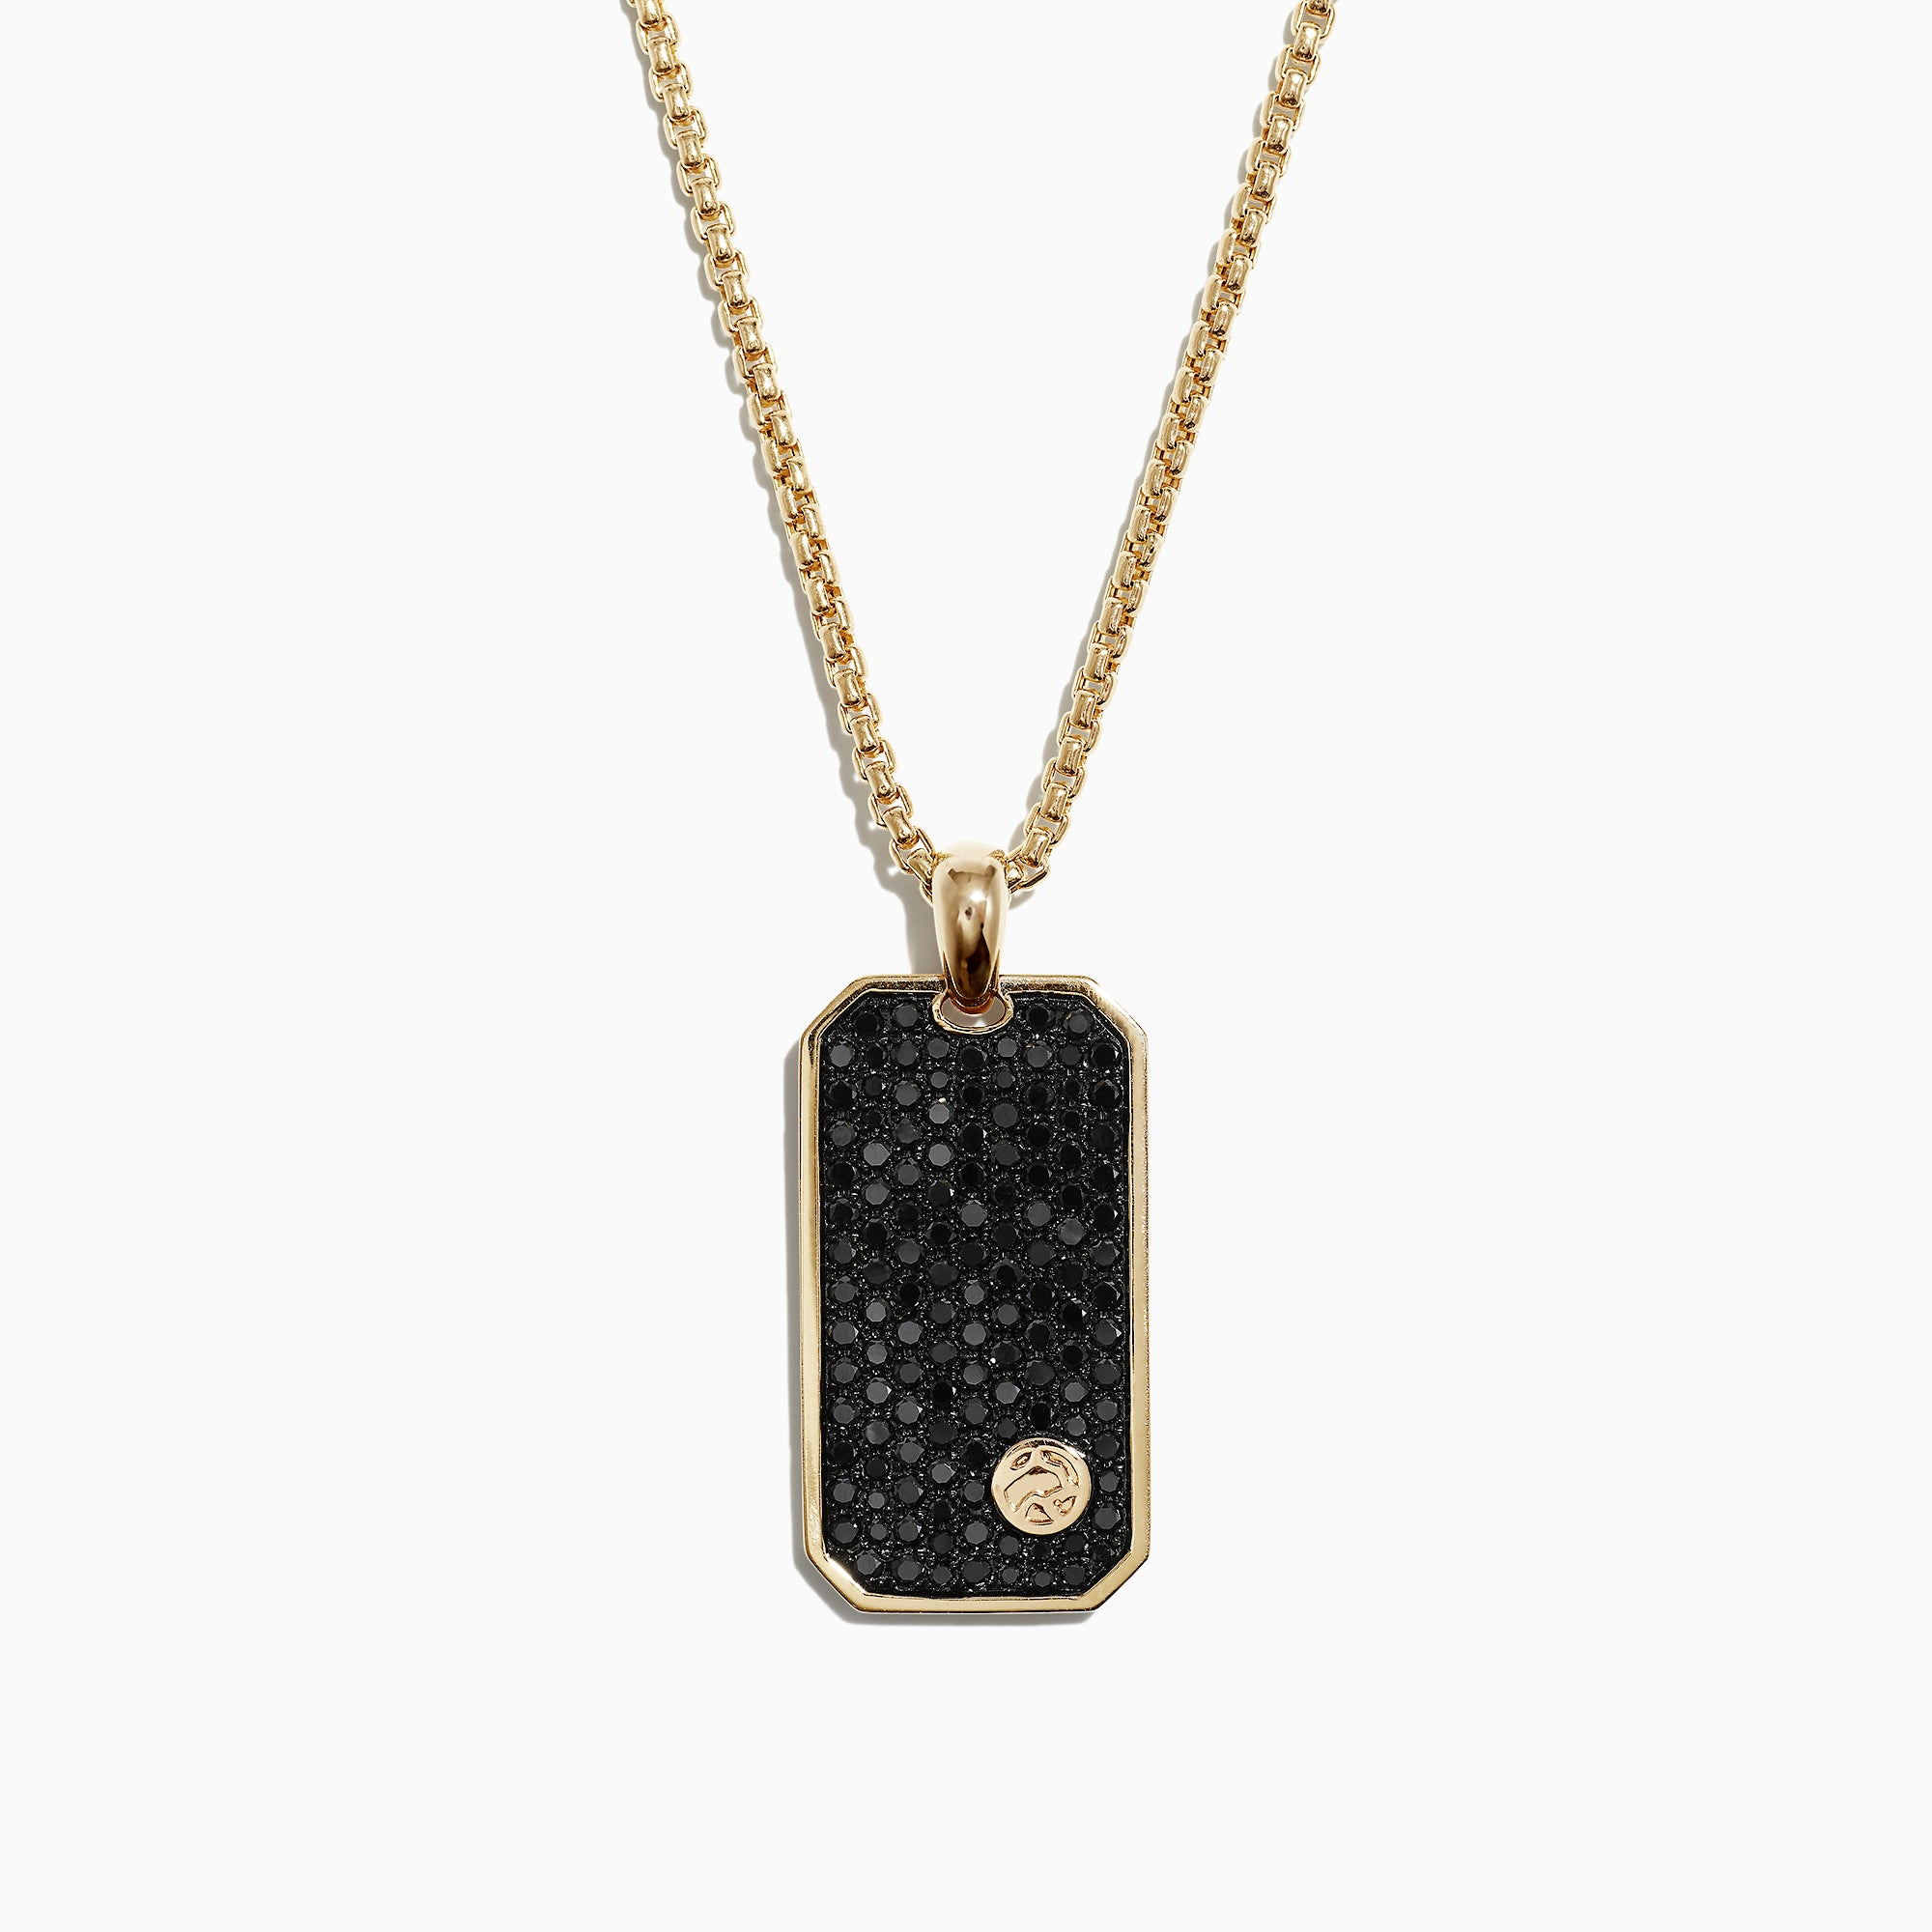 Effy Men's 14K Yellow Gold Black Diamond Dog Tag Pendant, 1.36 TCW